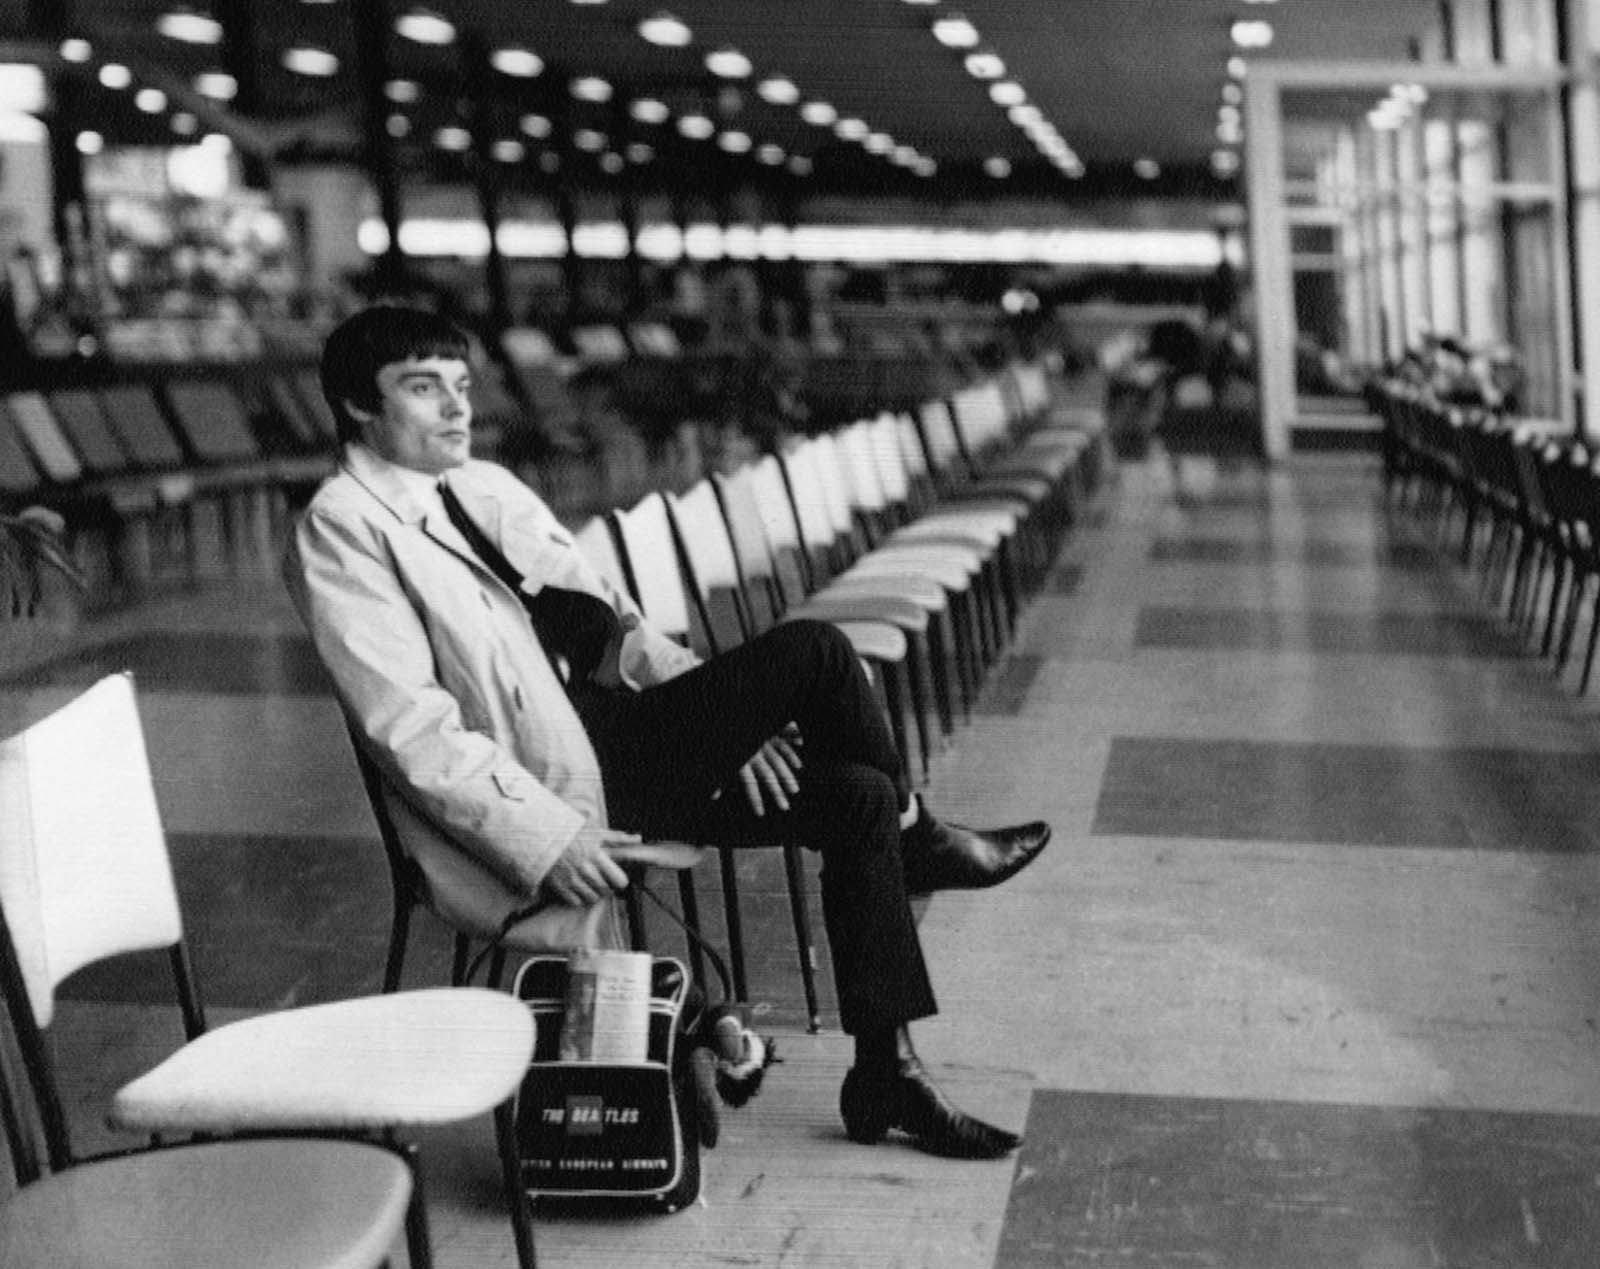 Drummer Jimmy Nicol, who had been stand-in for tonsillitis-stricken Beatle Ringo Starr, sits alone and contemplative at Melbourne's Essendon Airport, while waiting to return home on June 15, 1964. Ringo rejoined the Beatles the day before.